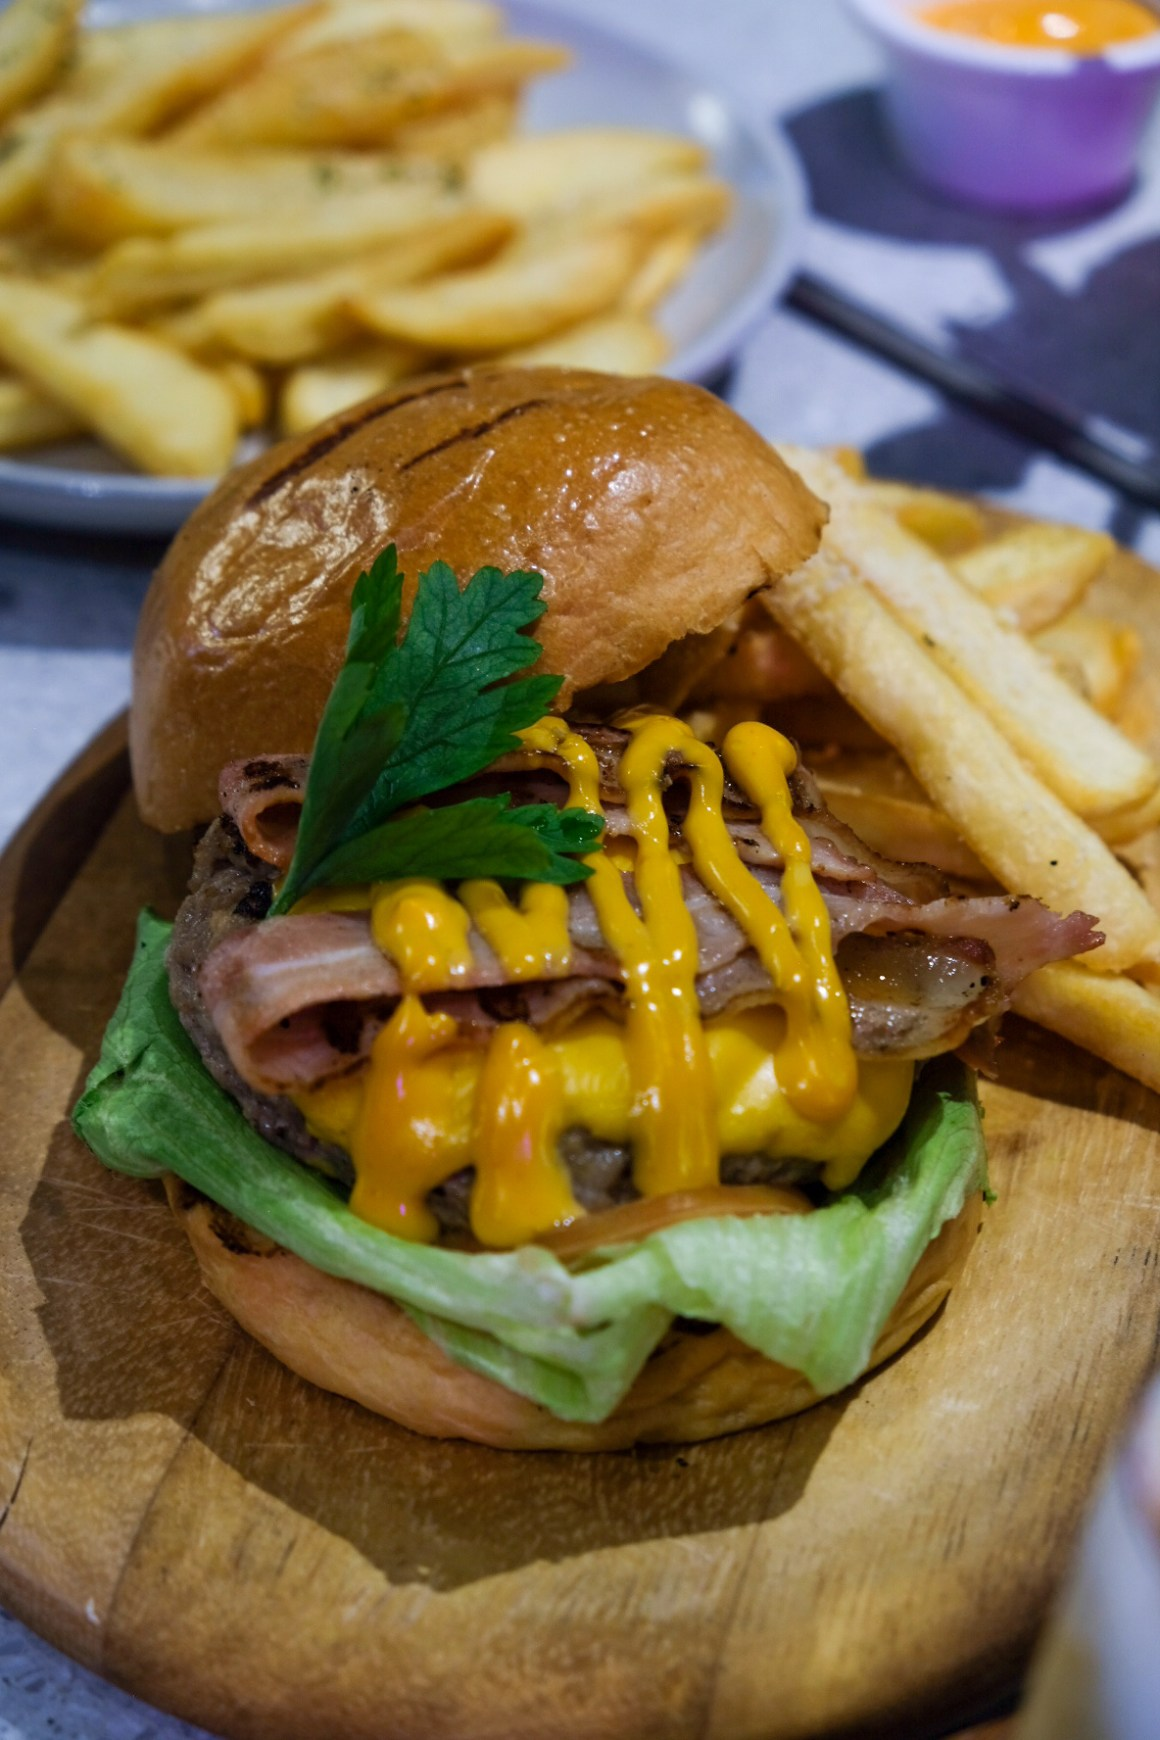 Rumours Bar & Grill @ Jewel Changi, Second Outlet - Rumours Classic Cheeseburger ($16.80)